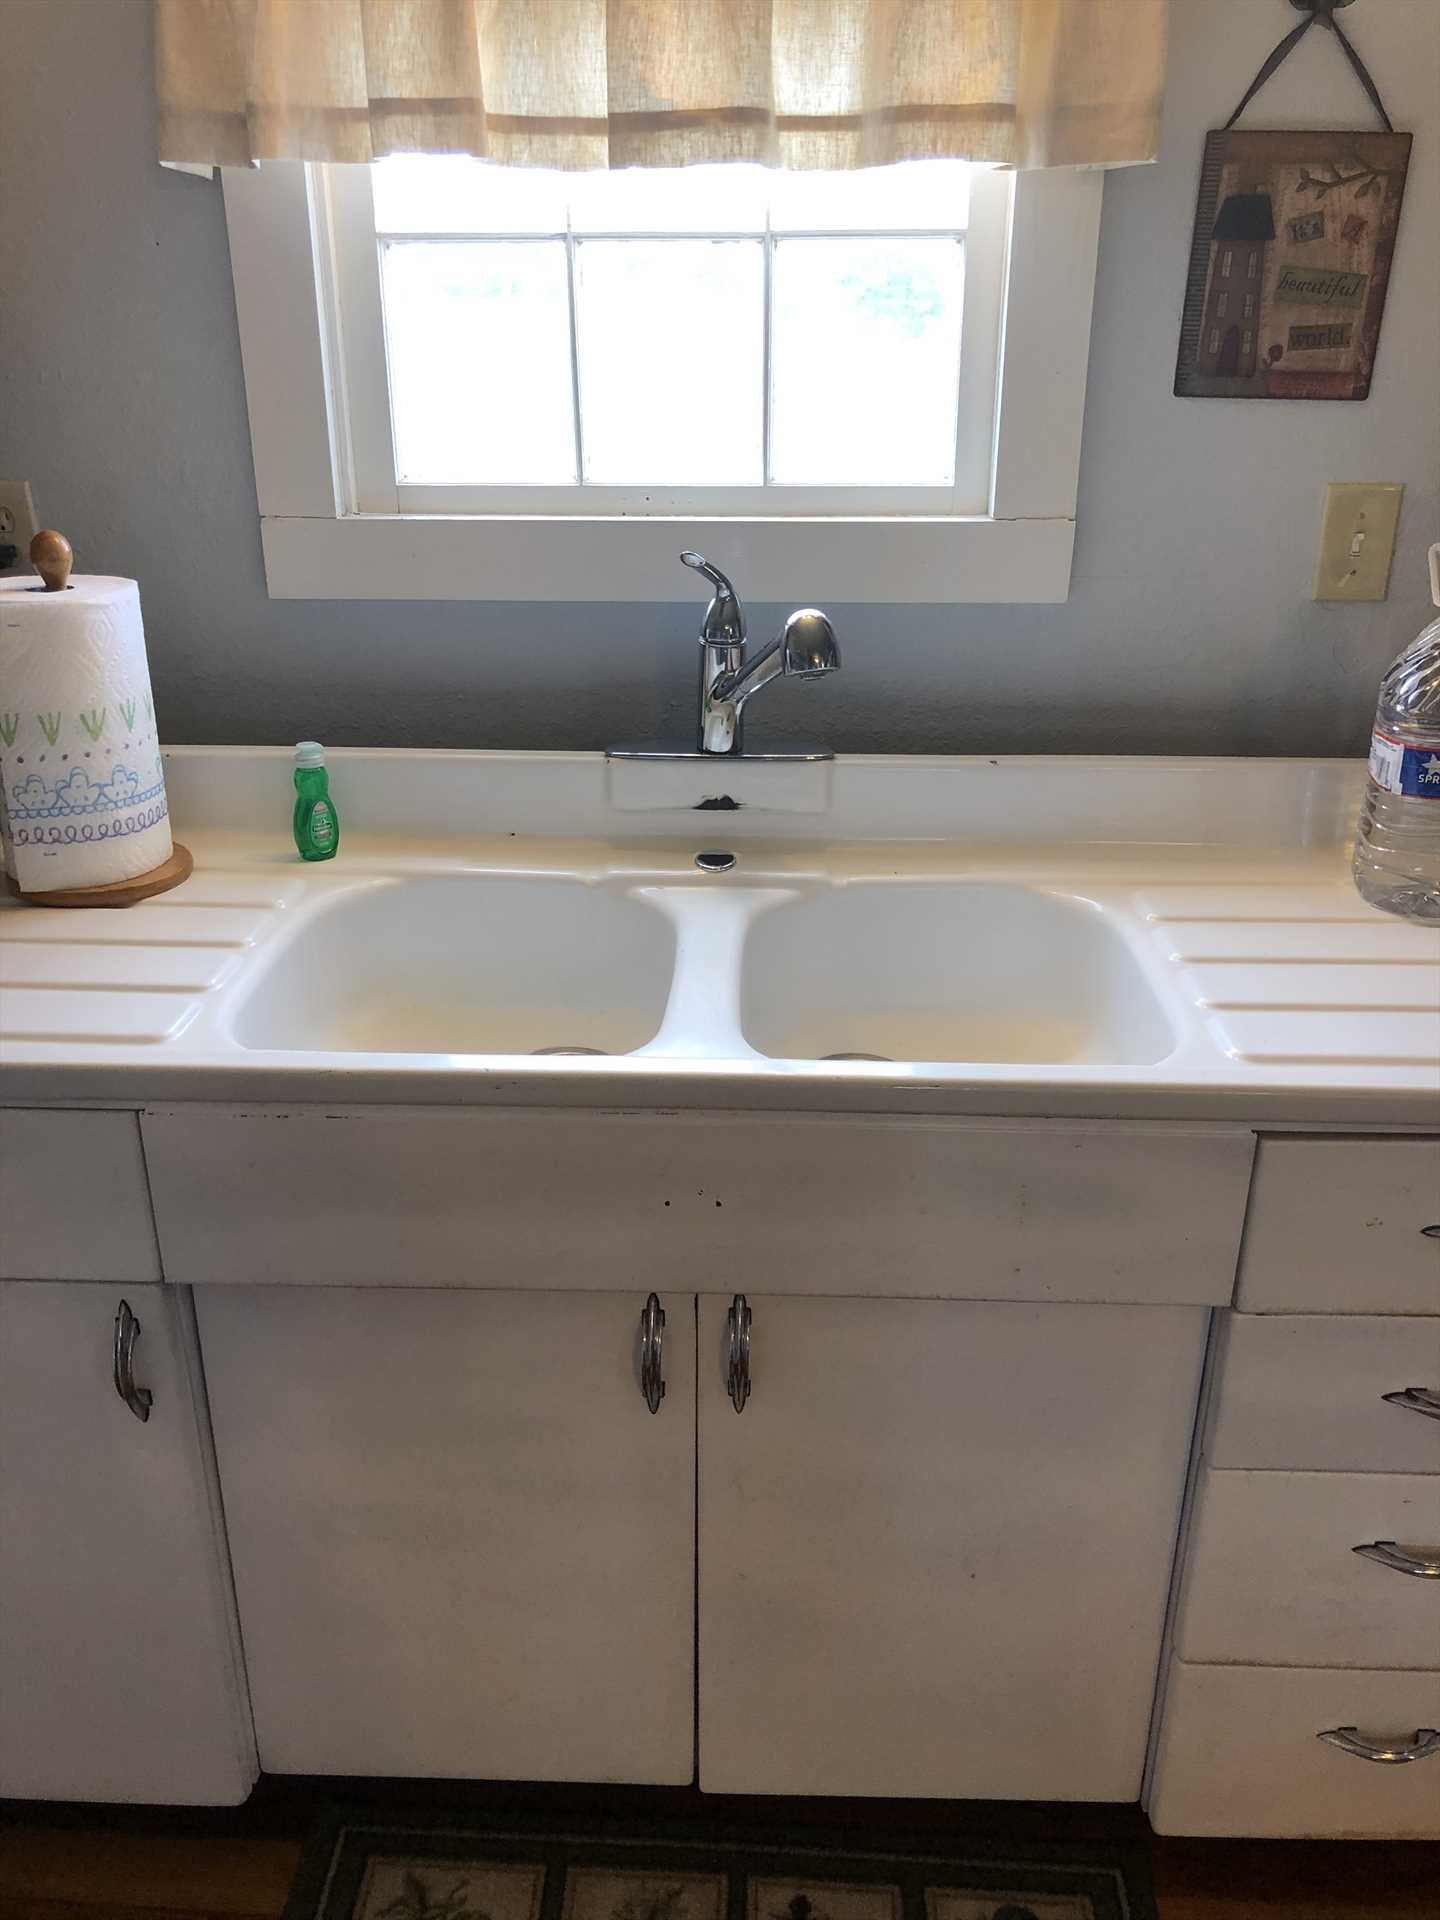 Youngstown kitchen cabinets, and the accompanying twin sink, are vintage furnishings as historic as the house itself!